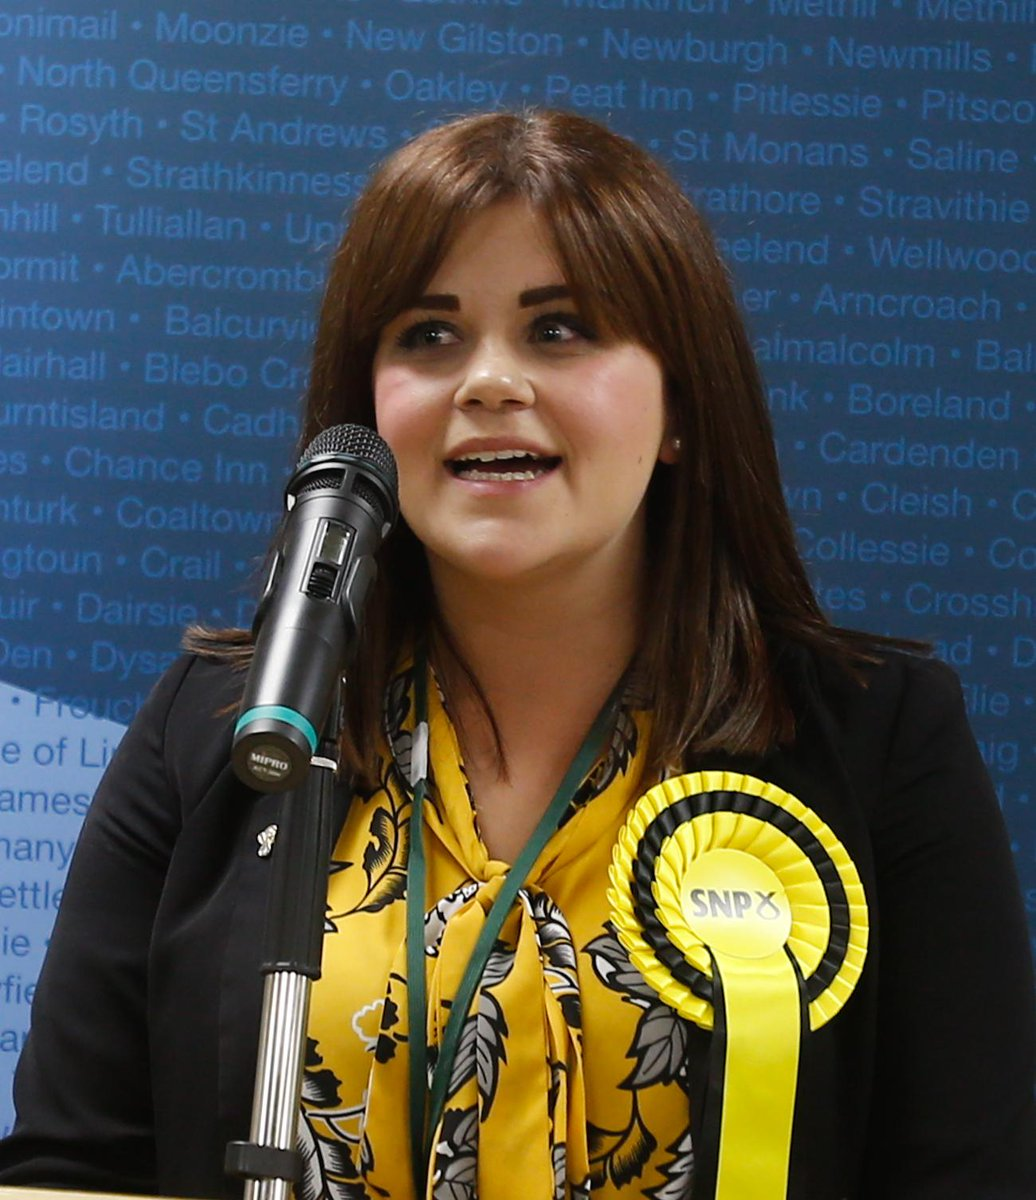 Julie Ford, SNP, newly elected Member for the Glenrothes West & Kinglassie council ward #glenwestbyelection http://t.co/Q3foJK2k6K